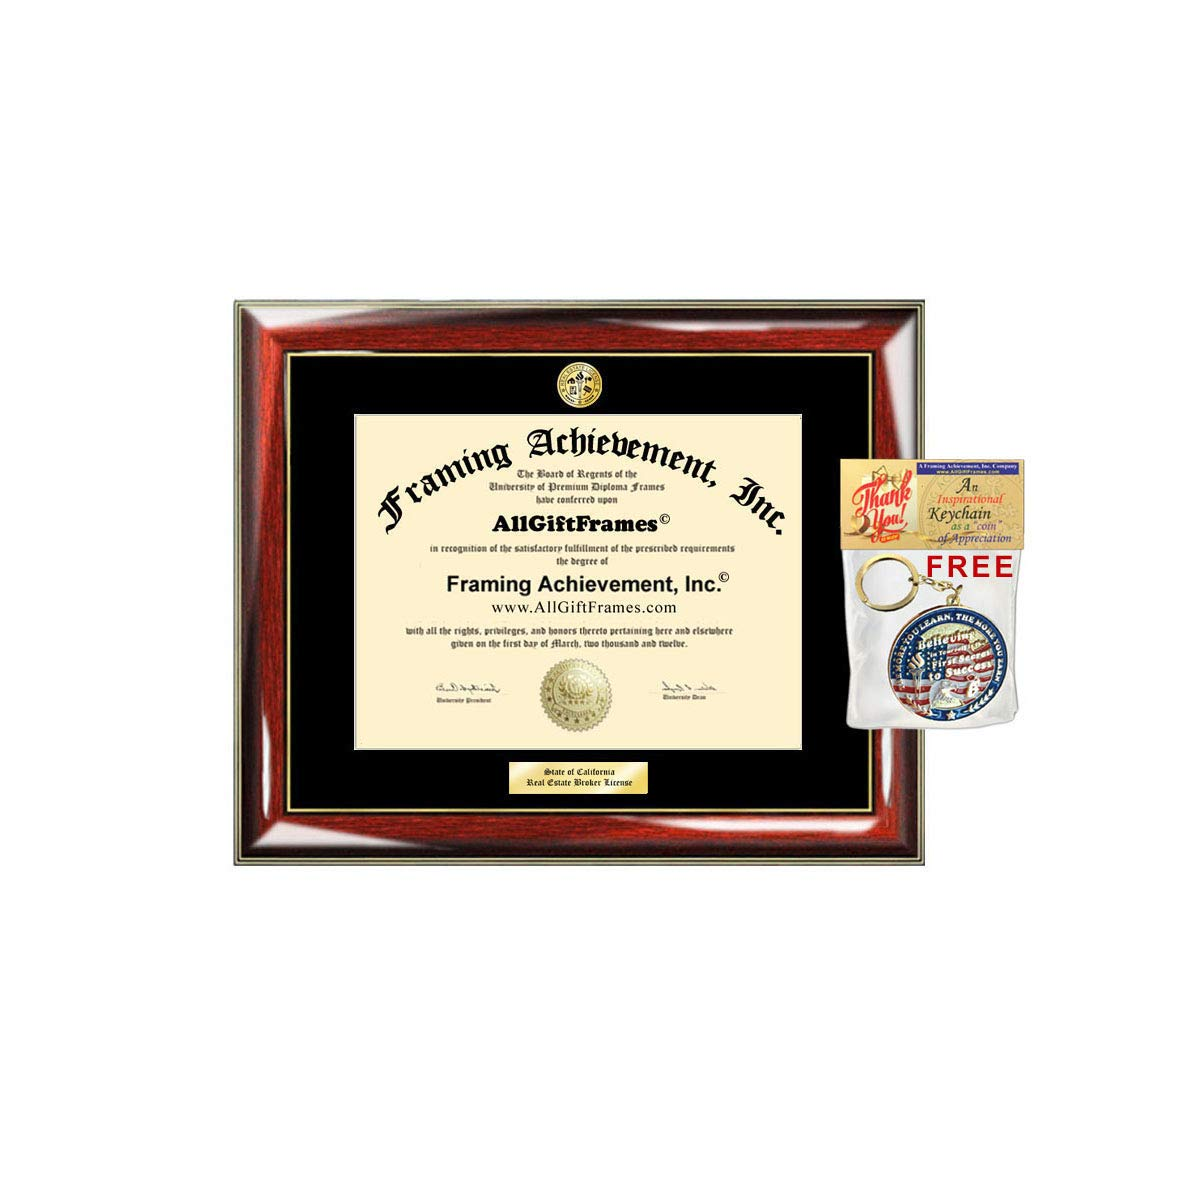 Engrave Realtor License State Board Real Estate Agent Personalized Certified Broker Certificate School Document Holder Case Plaque Frame Exam Student Gift Graduate